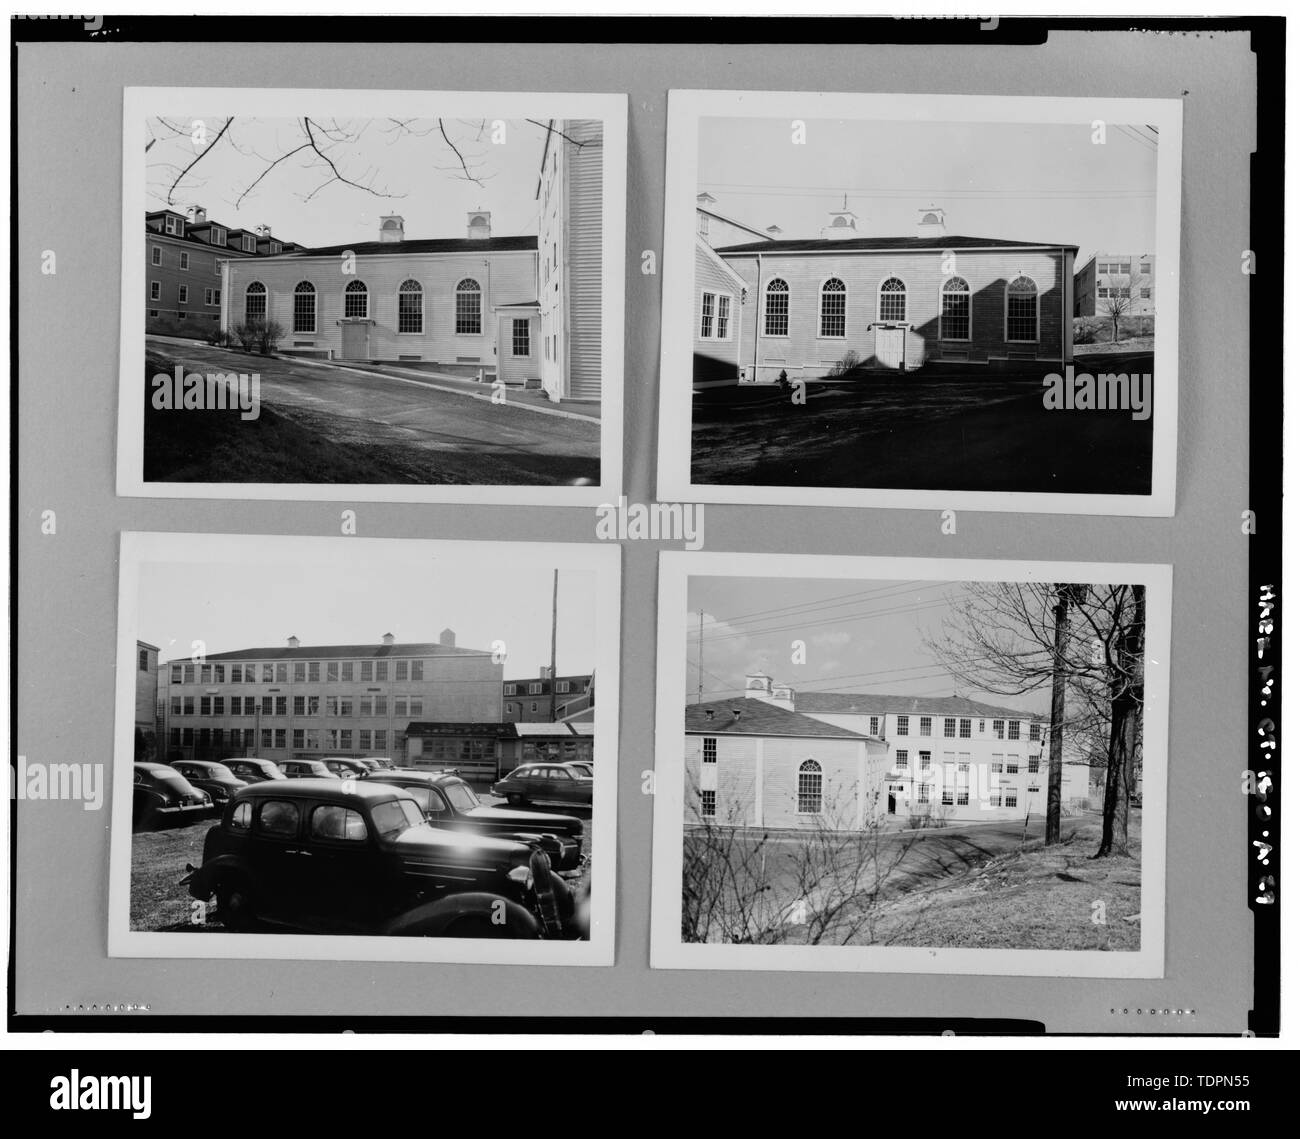 Photograph of four historic views of exterior of Bowditch Hall, c. 1950, taken from album in building photo files in Caretaker Site Office, Naval Undersea Warfare Center, New London. Copyright-free. - Naval Undersea Warfare Center, Bowditch Hall, 600 feet east of Smith Street and 350 feet south of Columbia Cove, West bank of Thames River, New London, New London County, CT - Stock Image